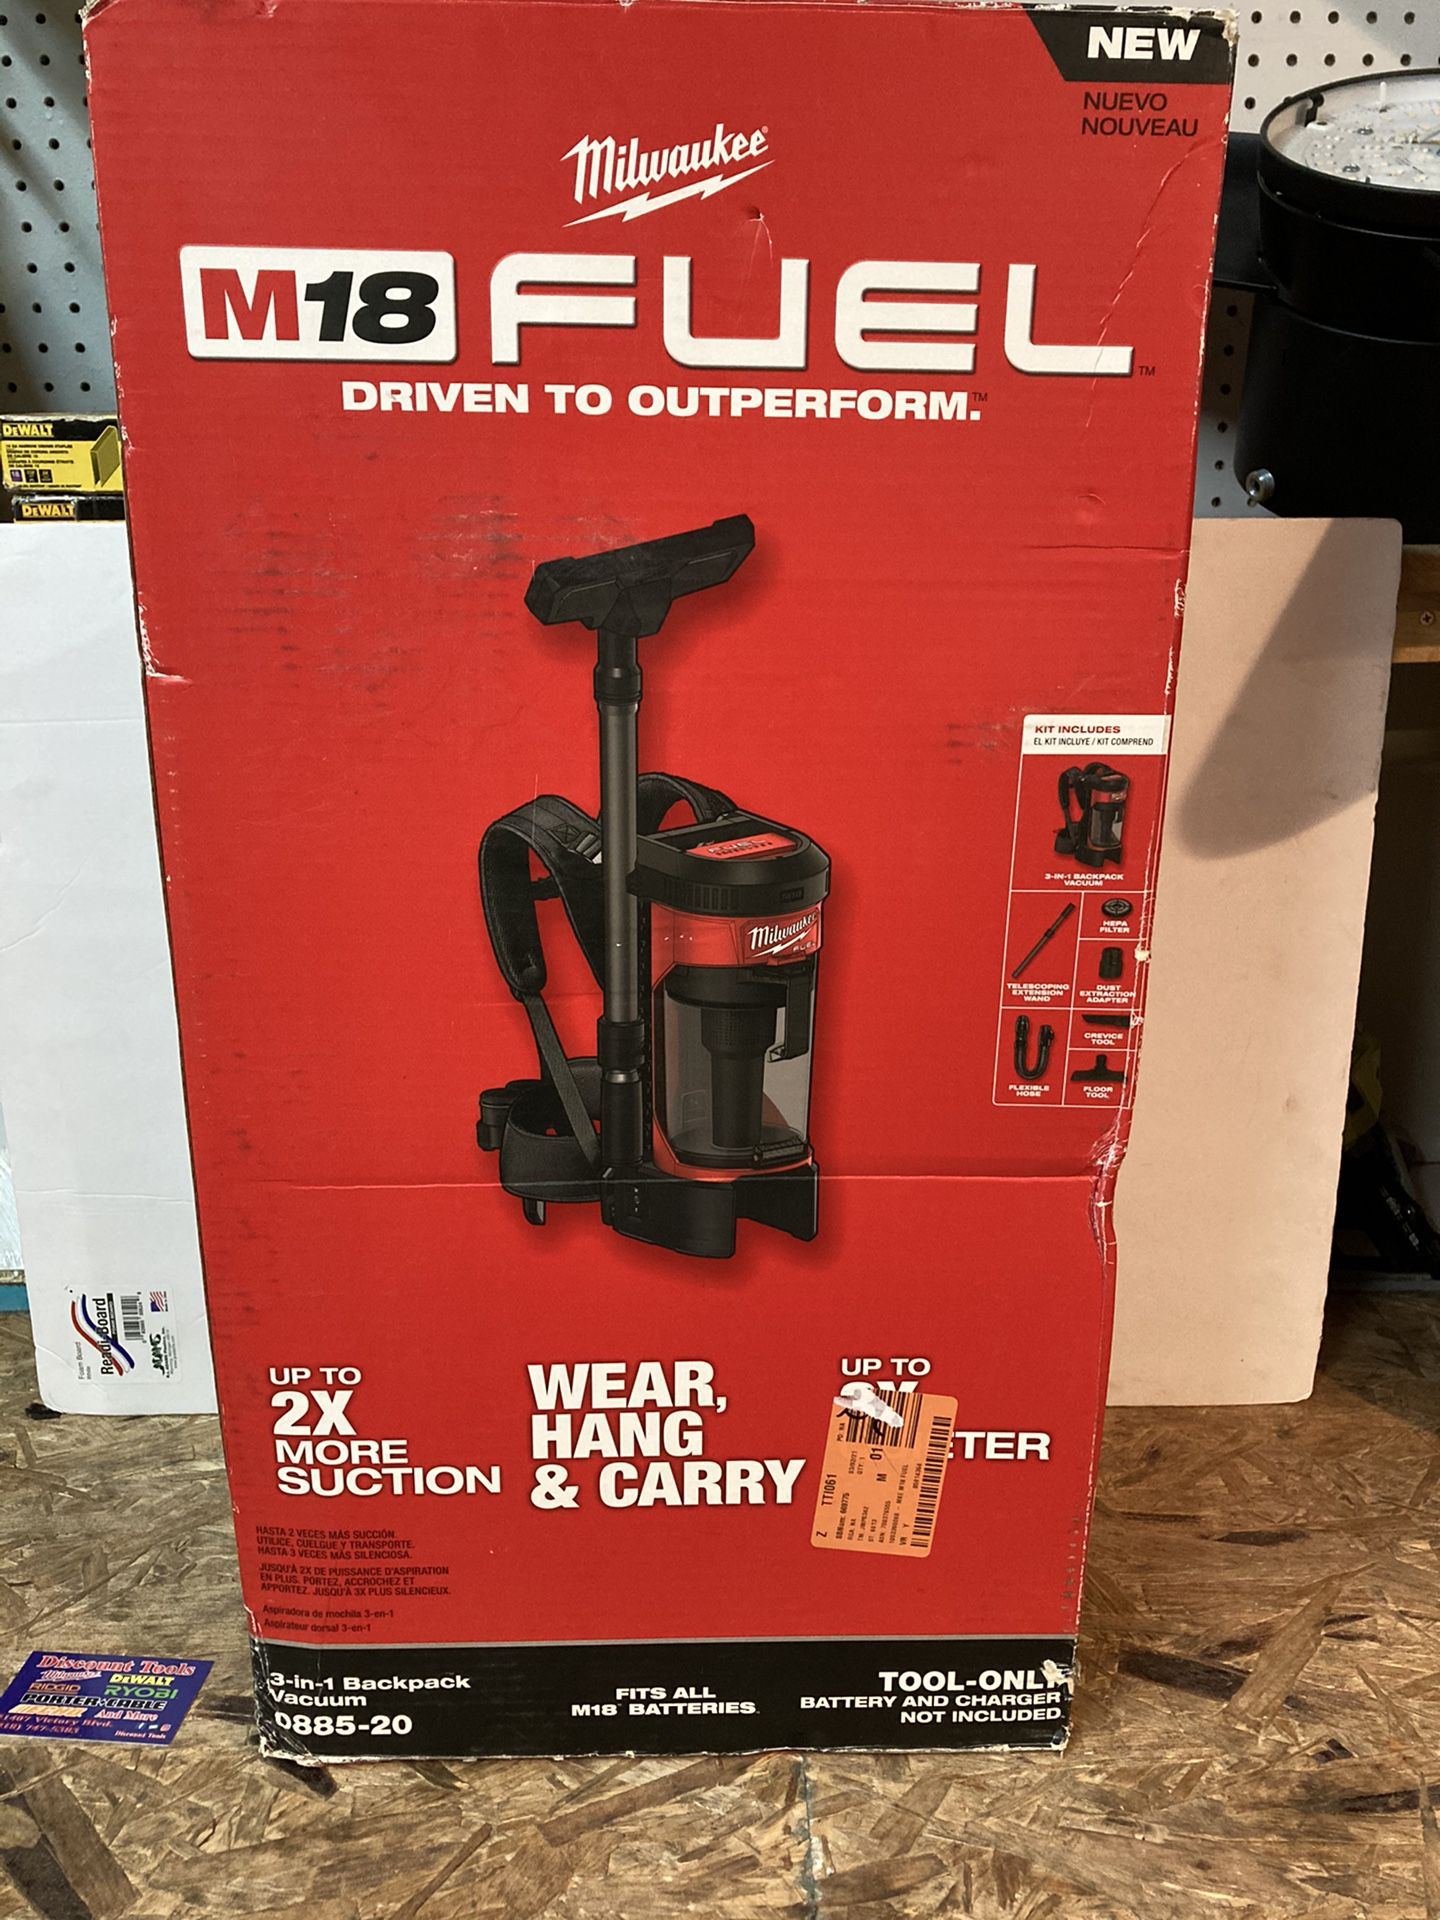 Milwaukee M18 FUEL 18-Volt Lithium-Ion Brushless 1 Gal. Cordless 3-in-1 Backpack Vacuum (Tool-Only)